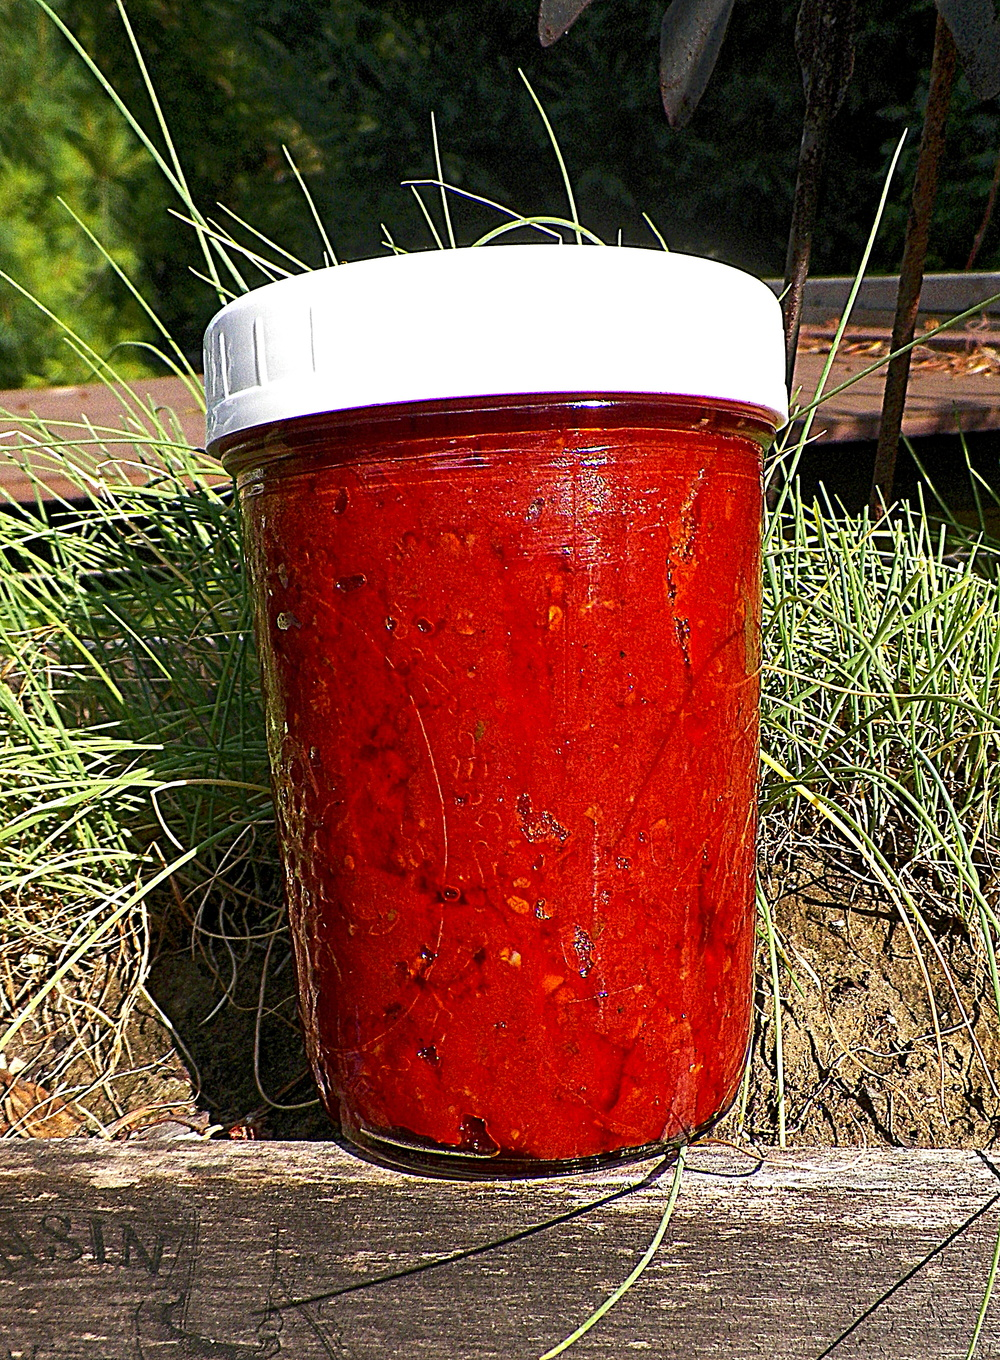 Finished tomato paste